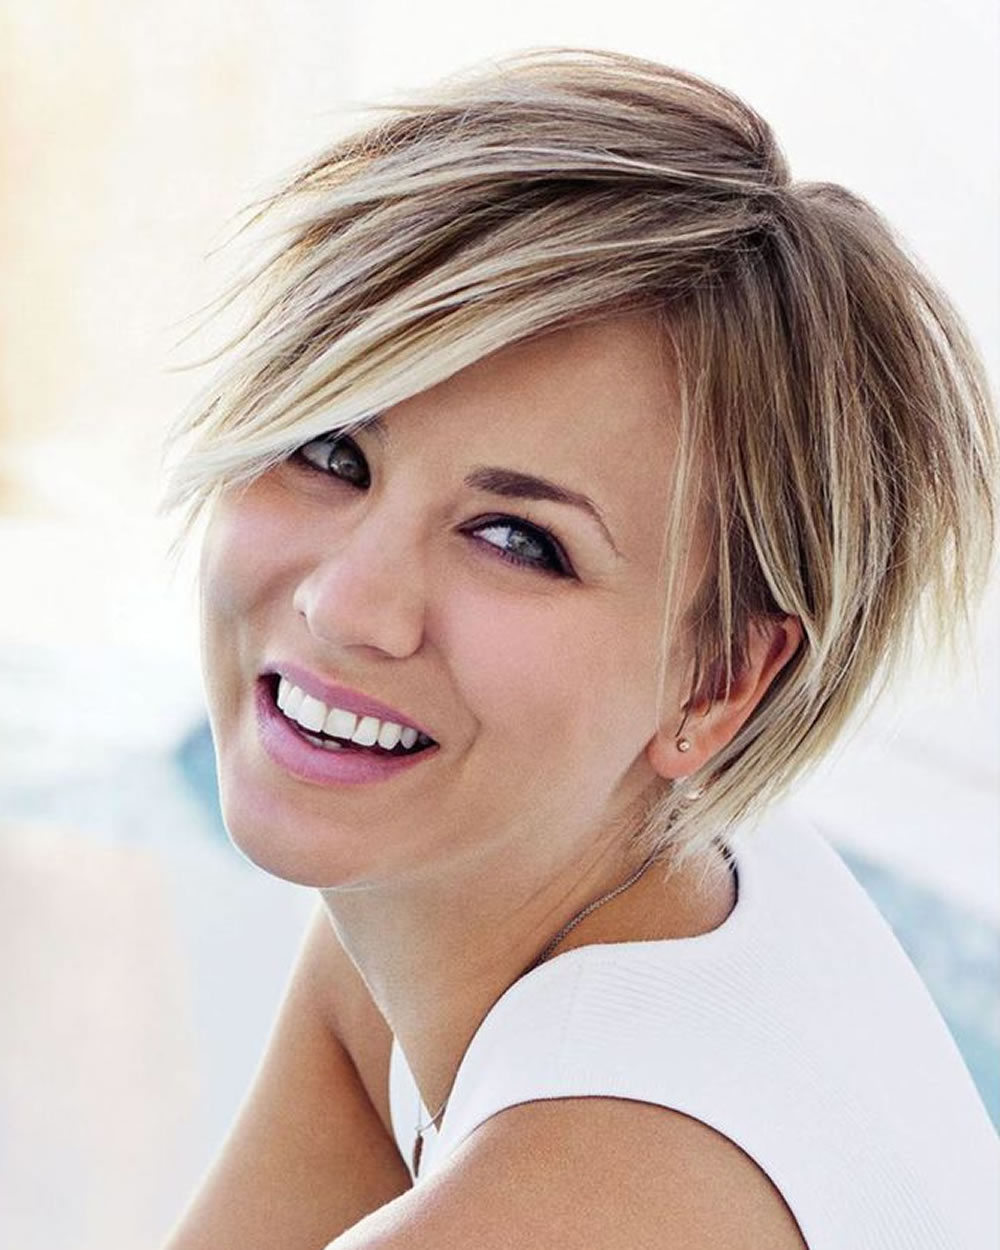 Short Hairstyles For Round Face And Thick Hair   All Hairstyles Pertaining To Short Hairstyles For Round Face (View 25 of 25)